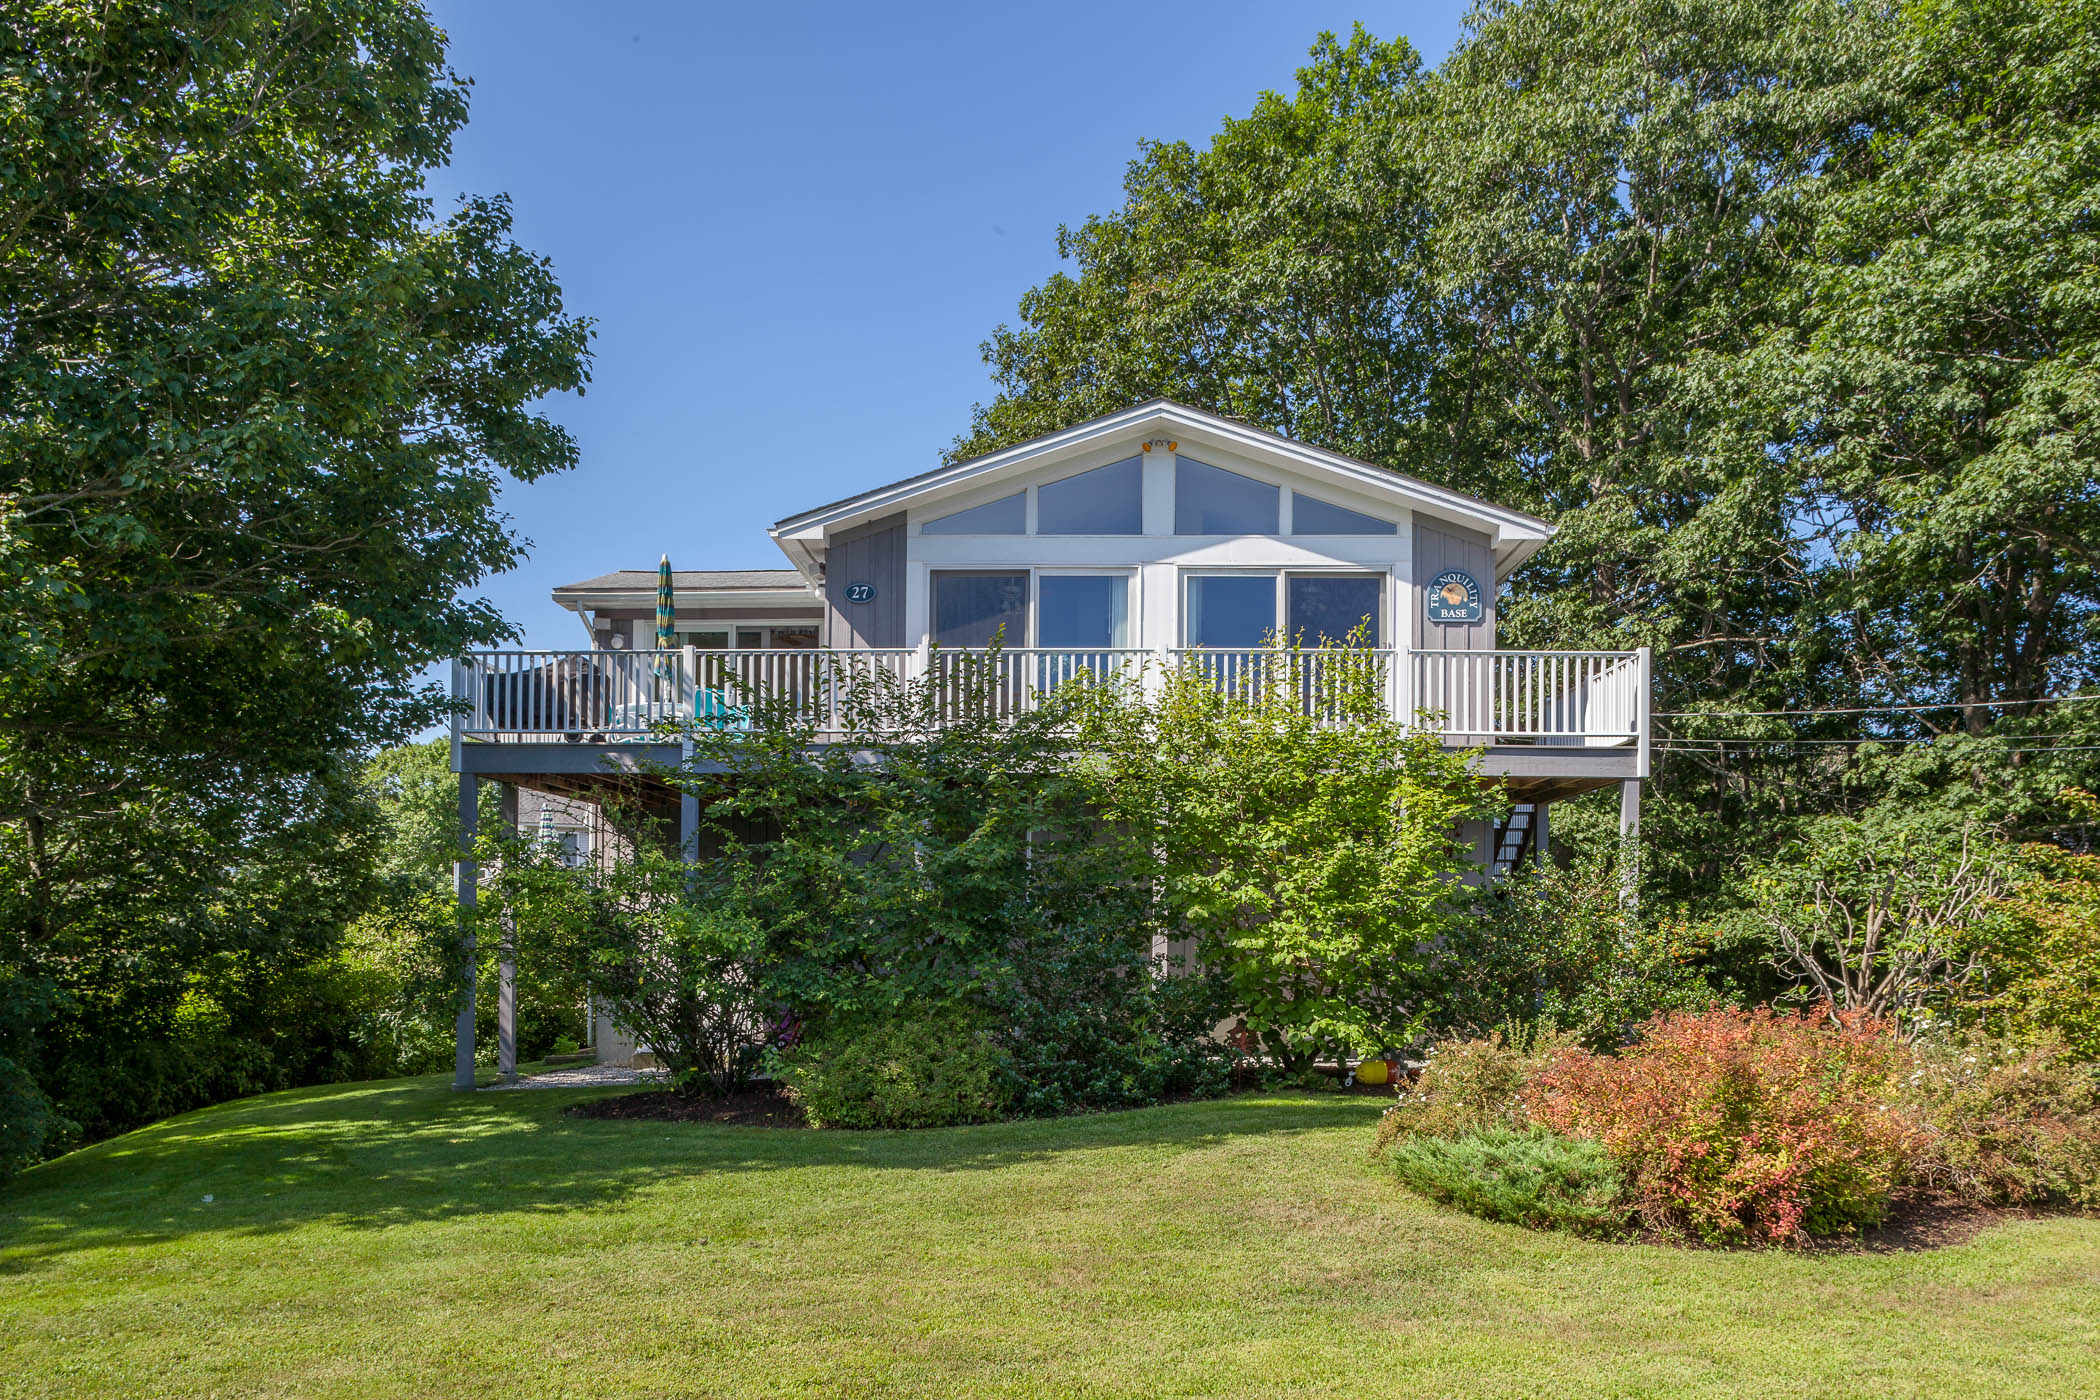 Serenity Now Details Vacation Rentals In Biddeford Pool Fortunes Rocks Hills Beach And Granite Point Maine